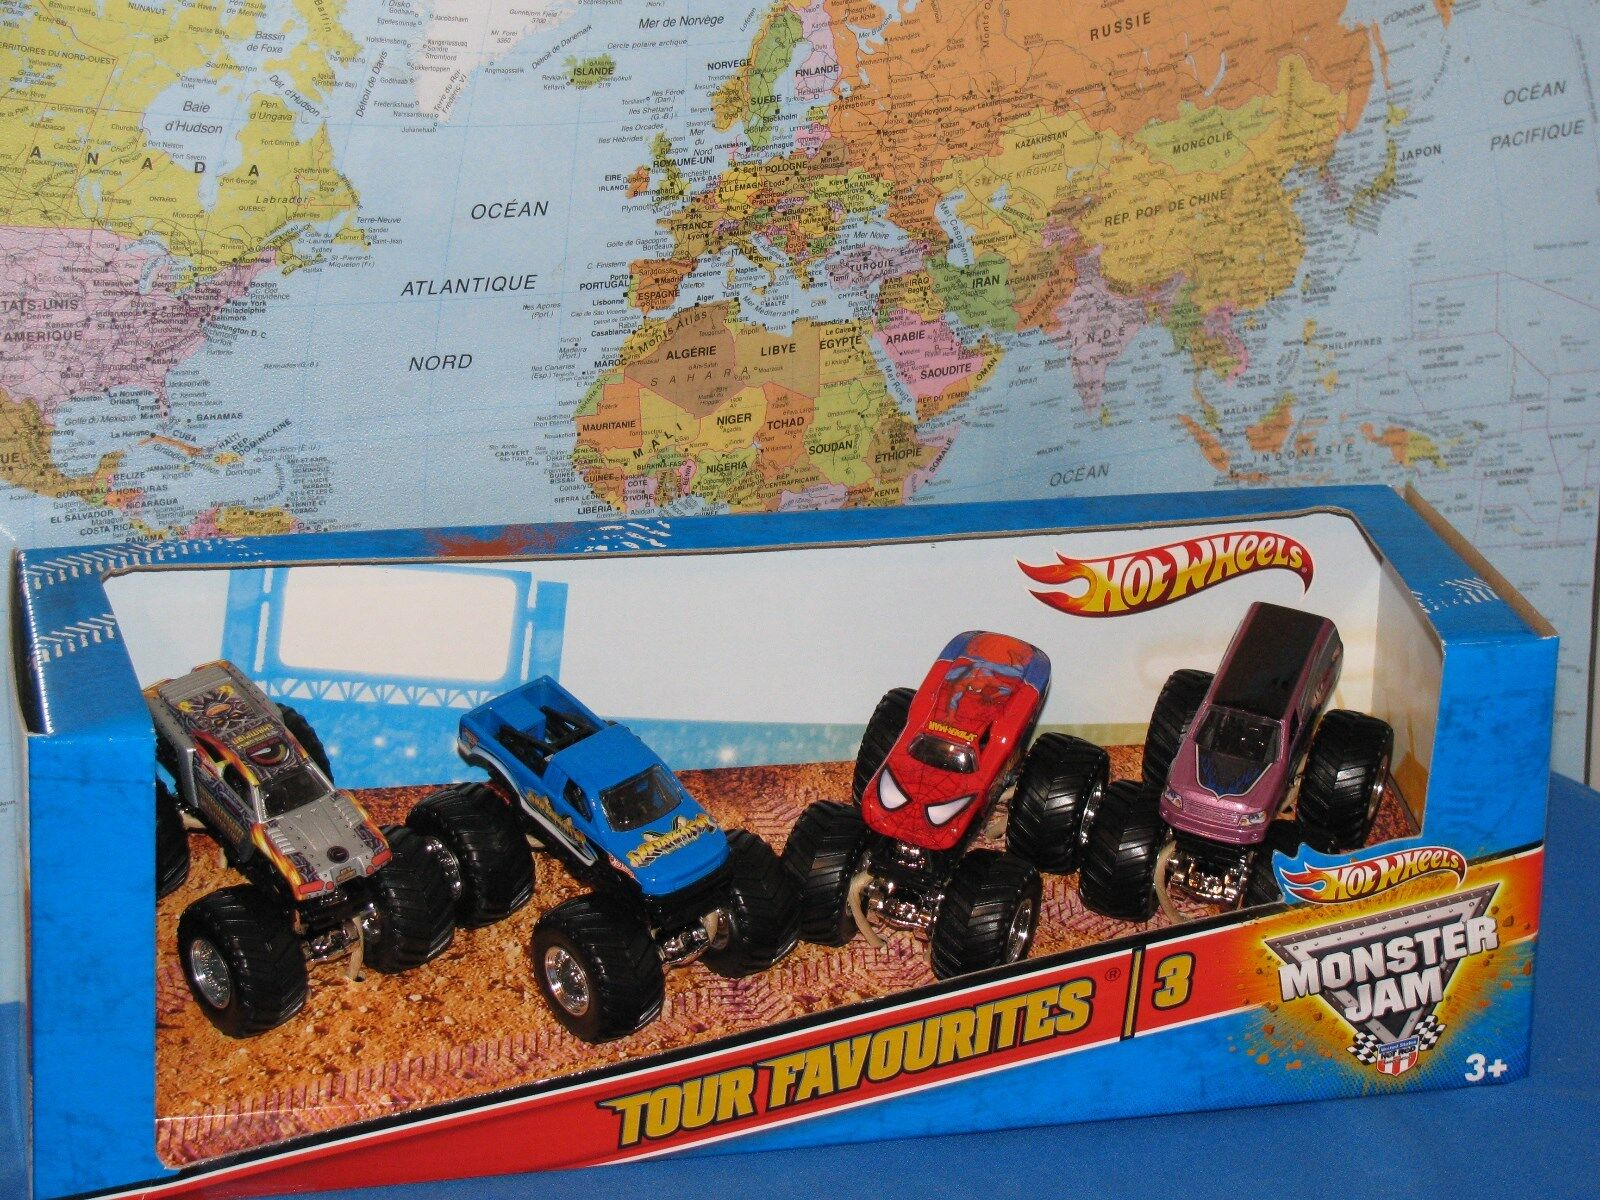 Hot Wheels Confiture de Monstre Paquet de 4 Tour Favoris  3 Maximum Destruction